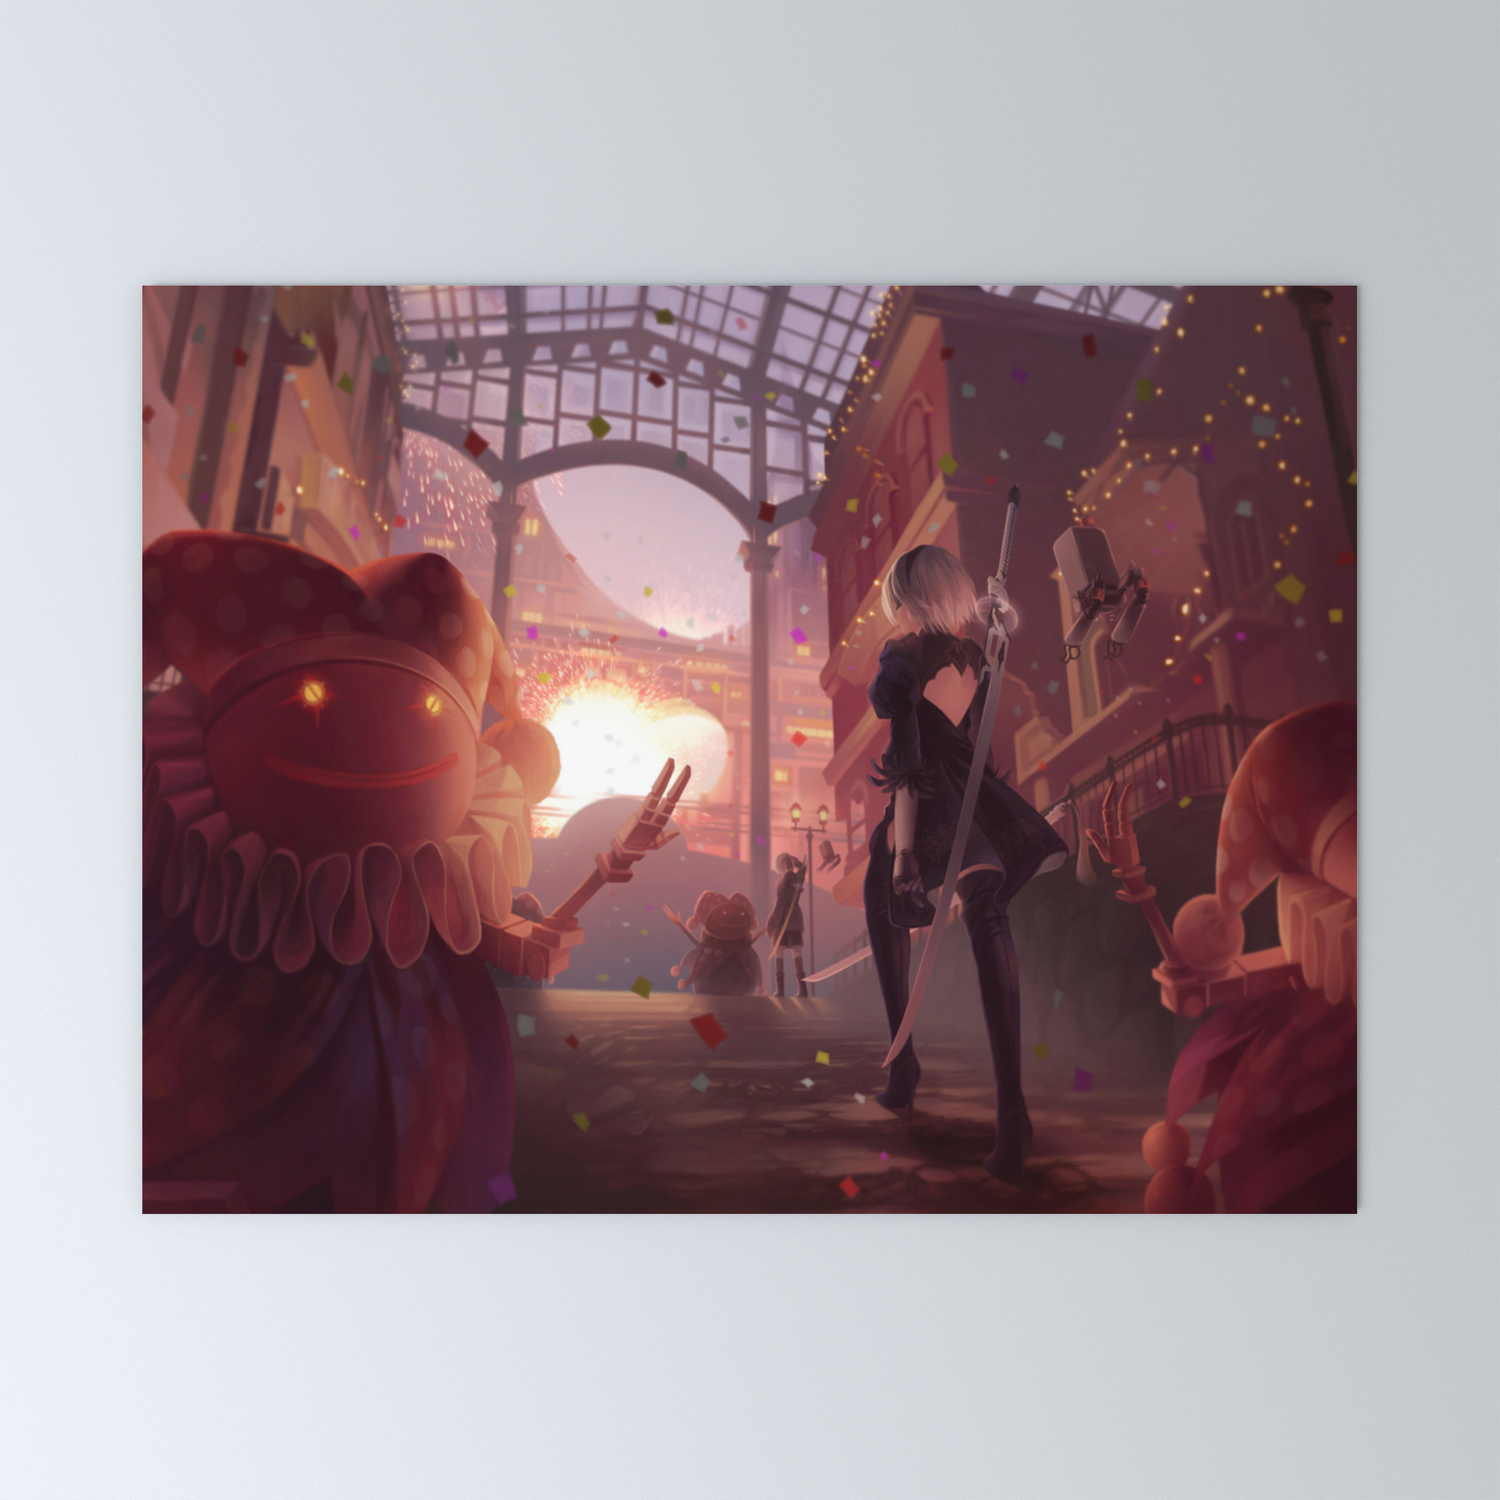 NieR Automata Tapestry Art Wall Hanging Cover Home Decor